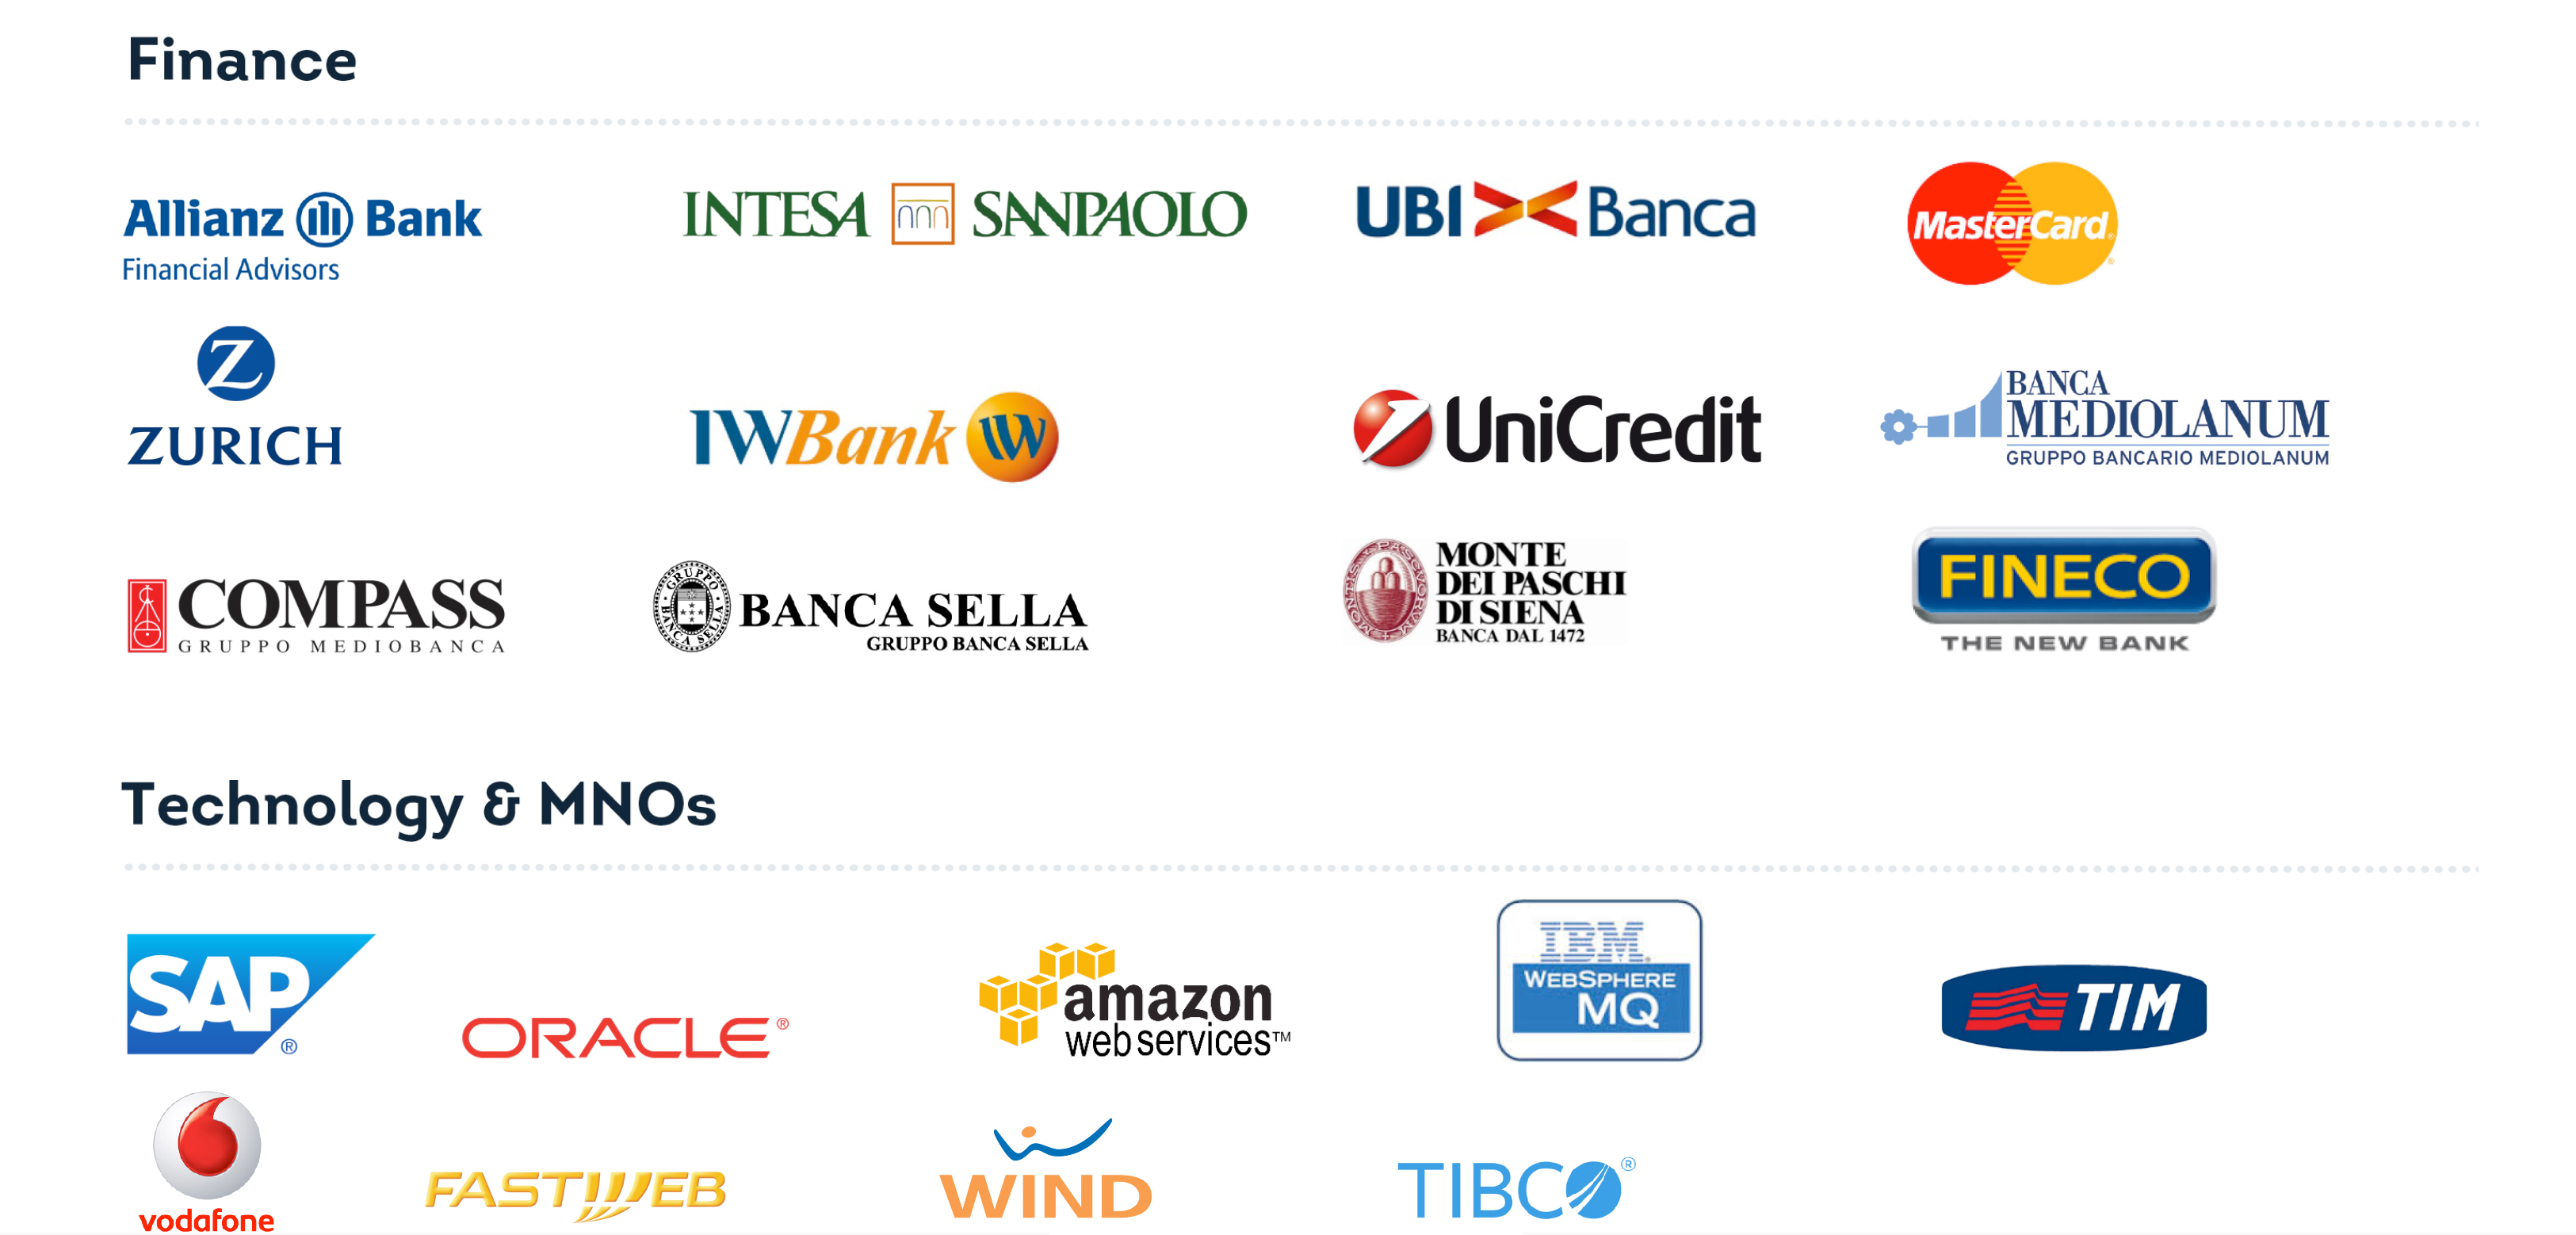 ubiquity-key-clients-and-partners